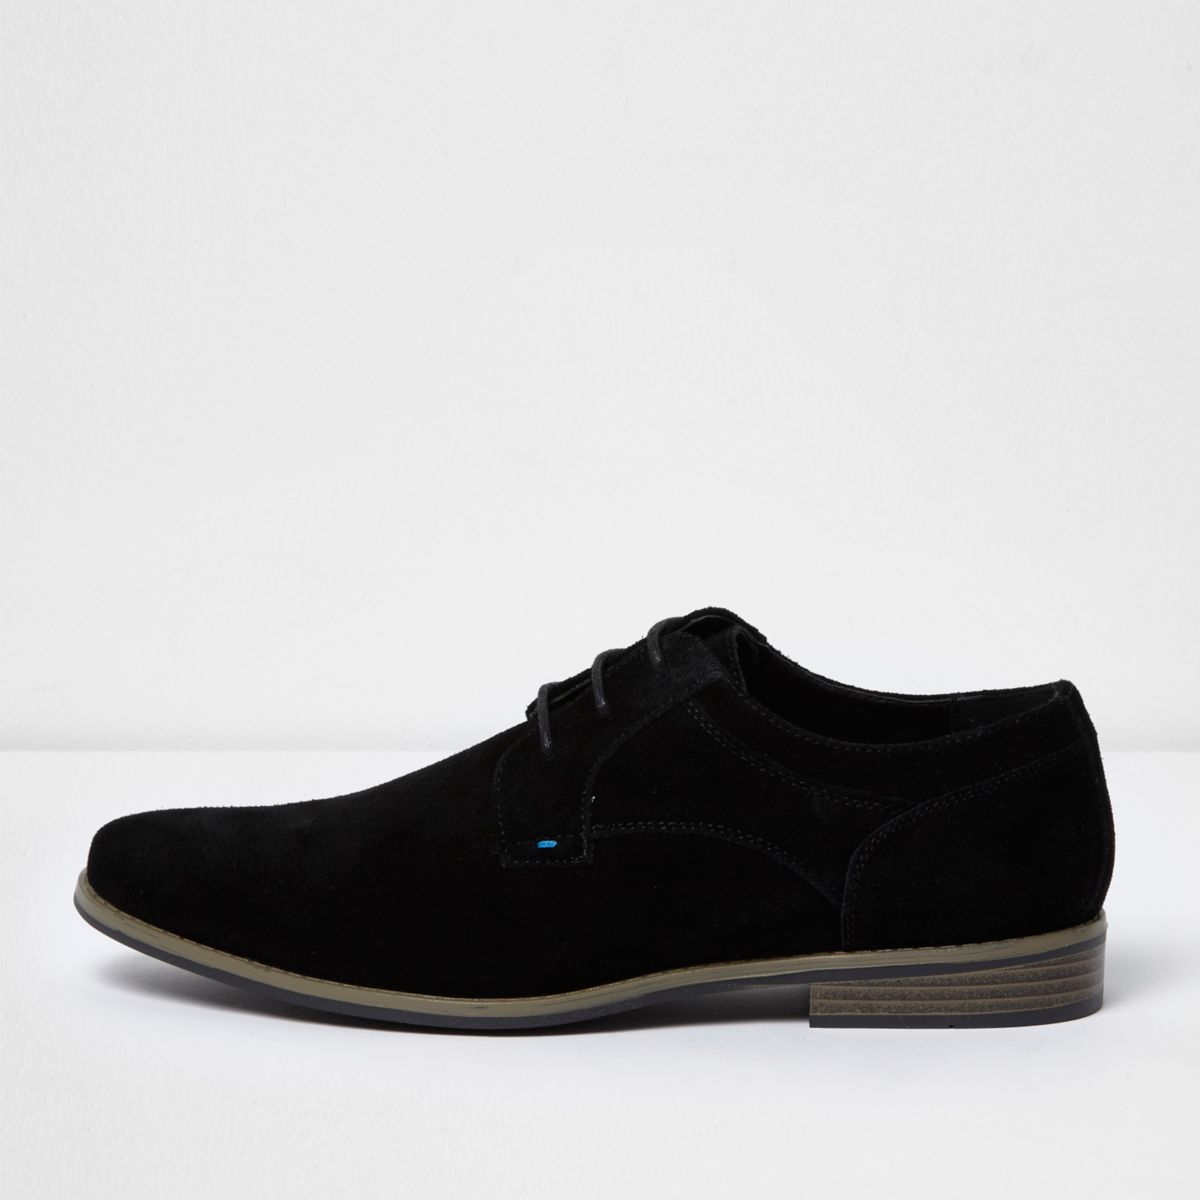 Mens Black Derby Shoes